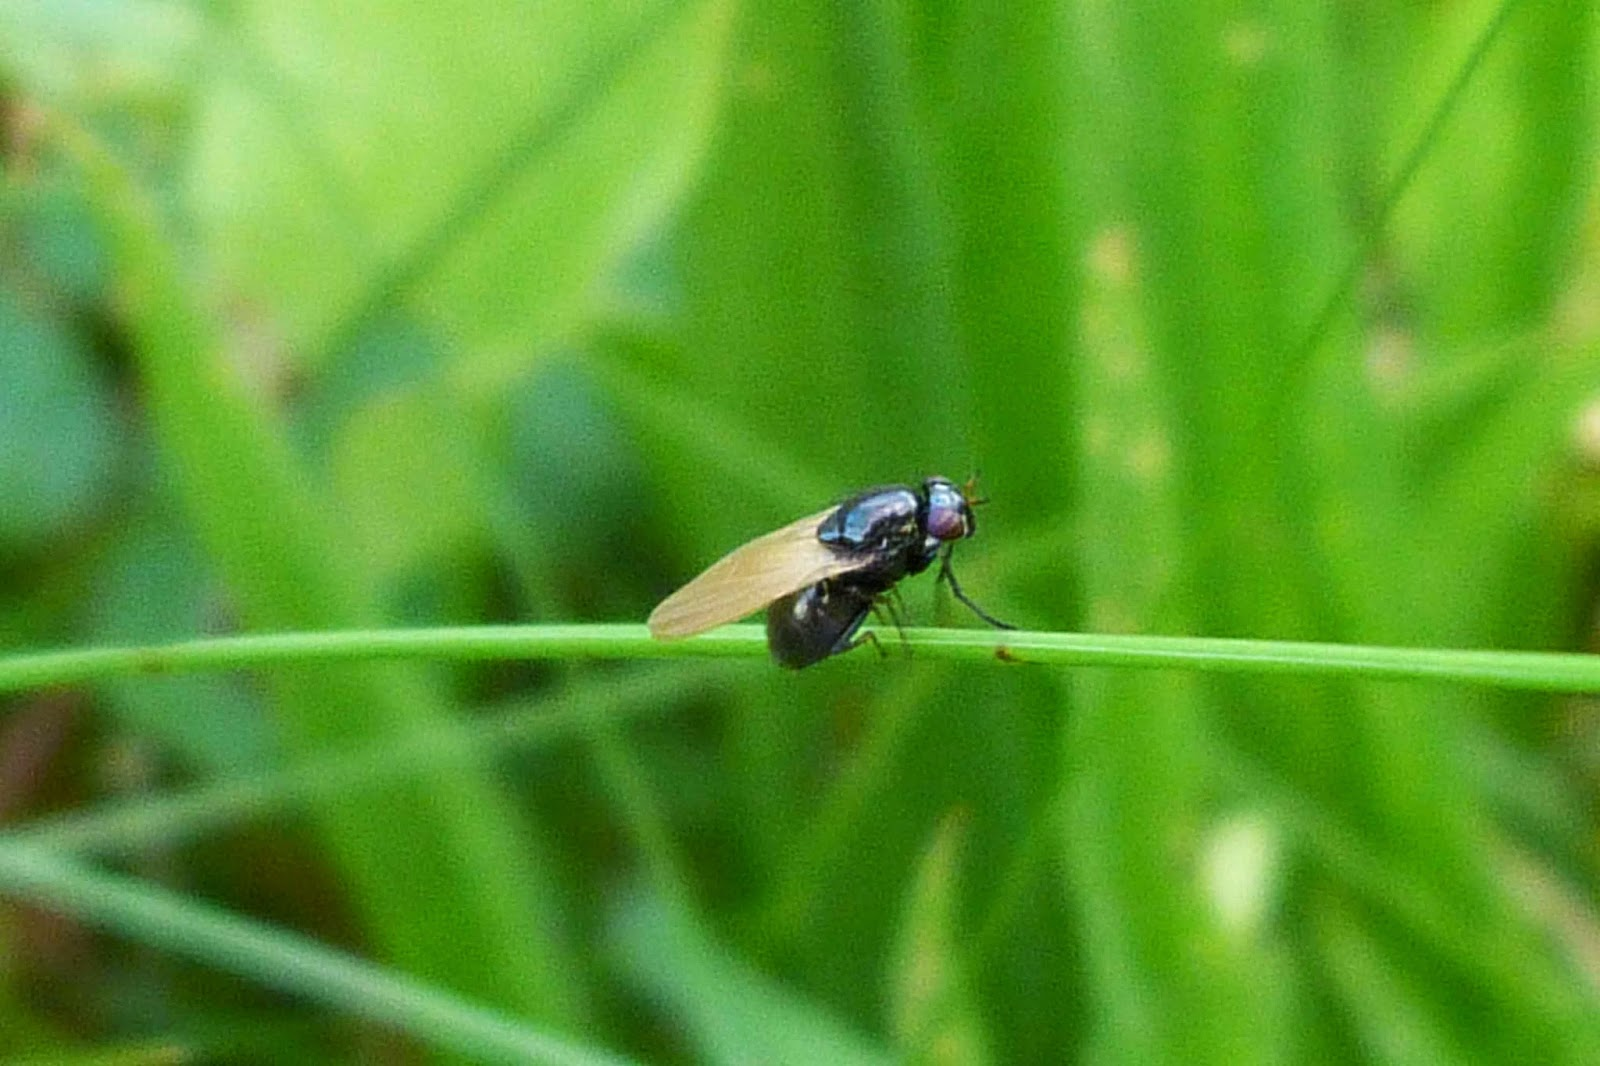 Small Black Flies In Kitchen Insects Of Scotland Other Flies Picture Wing Flies